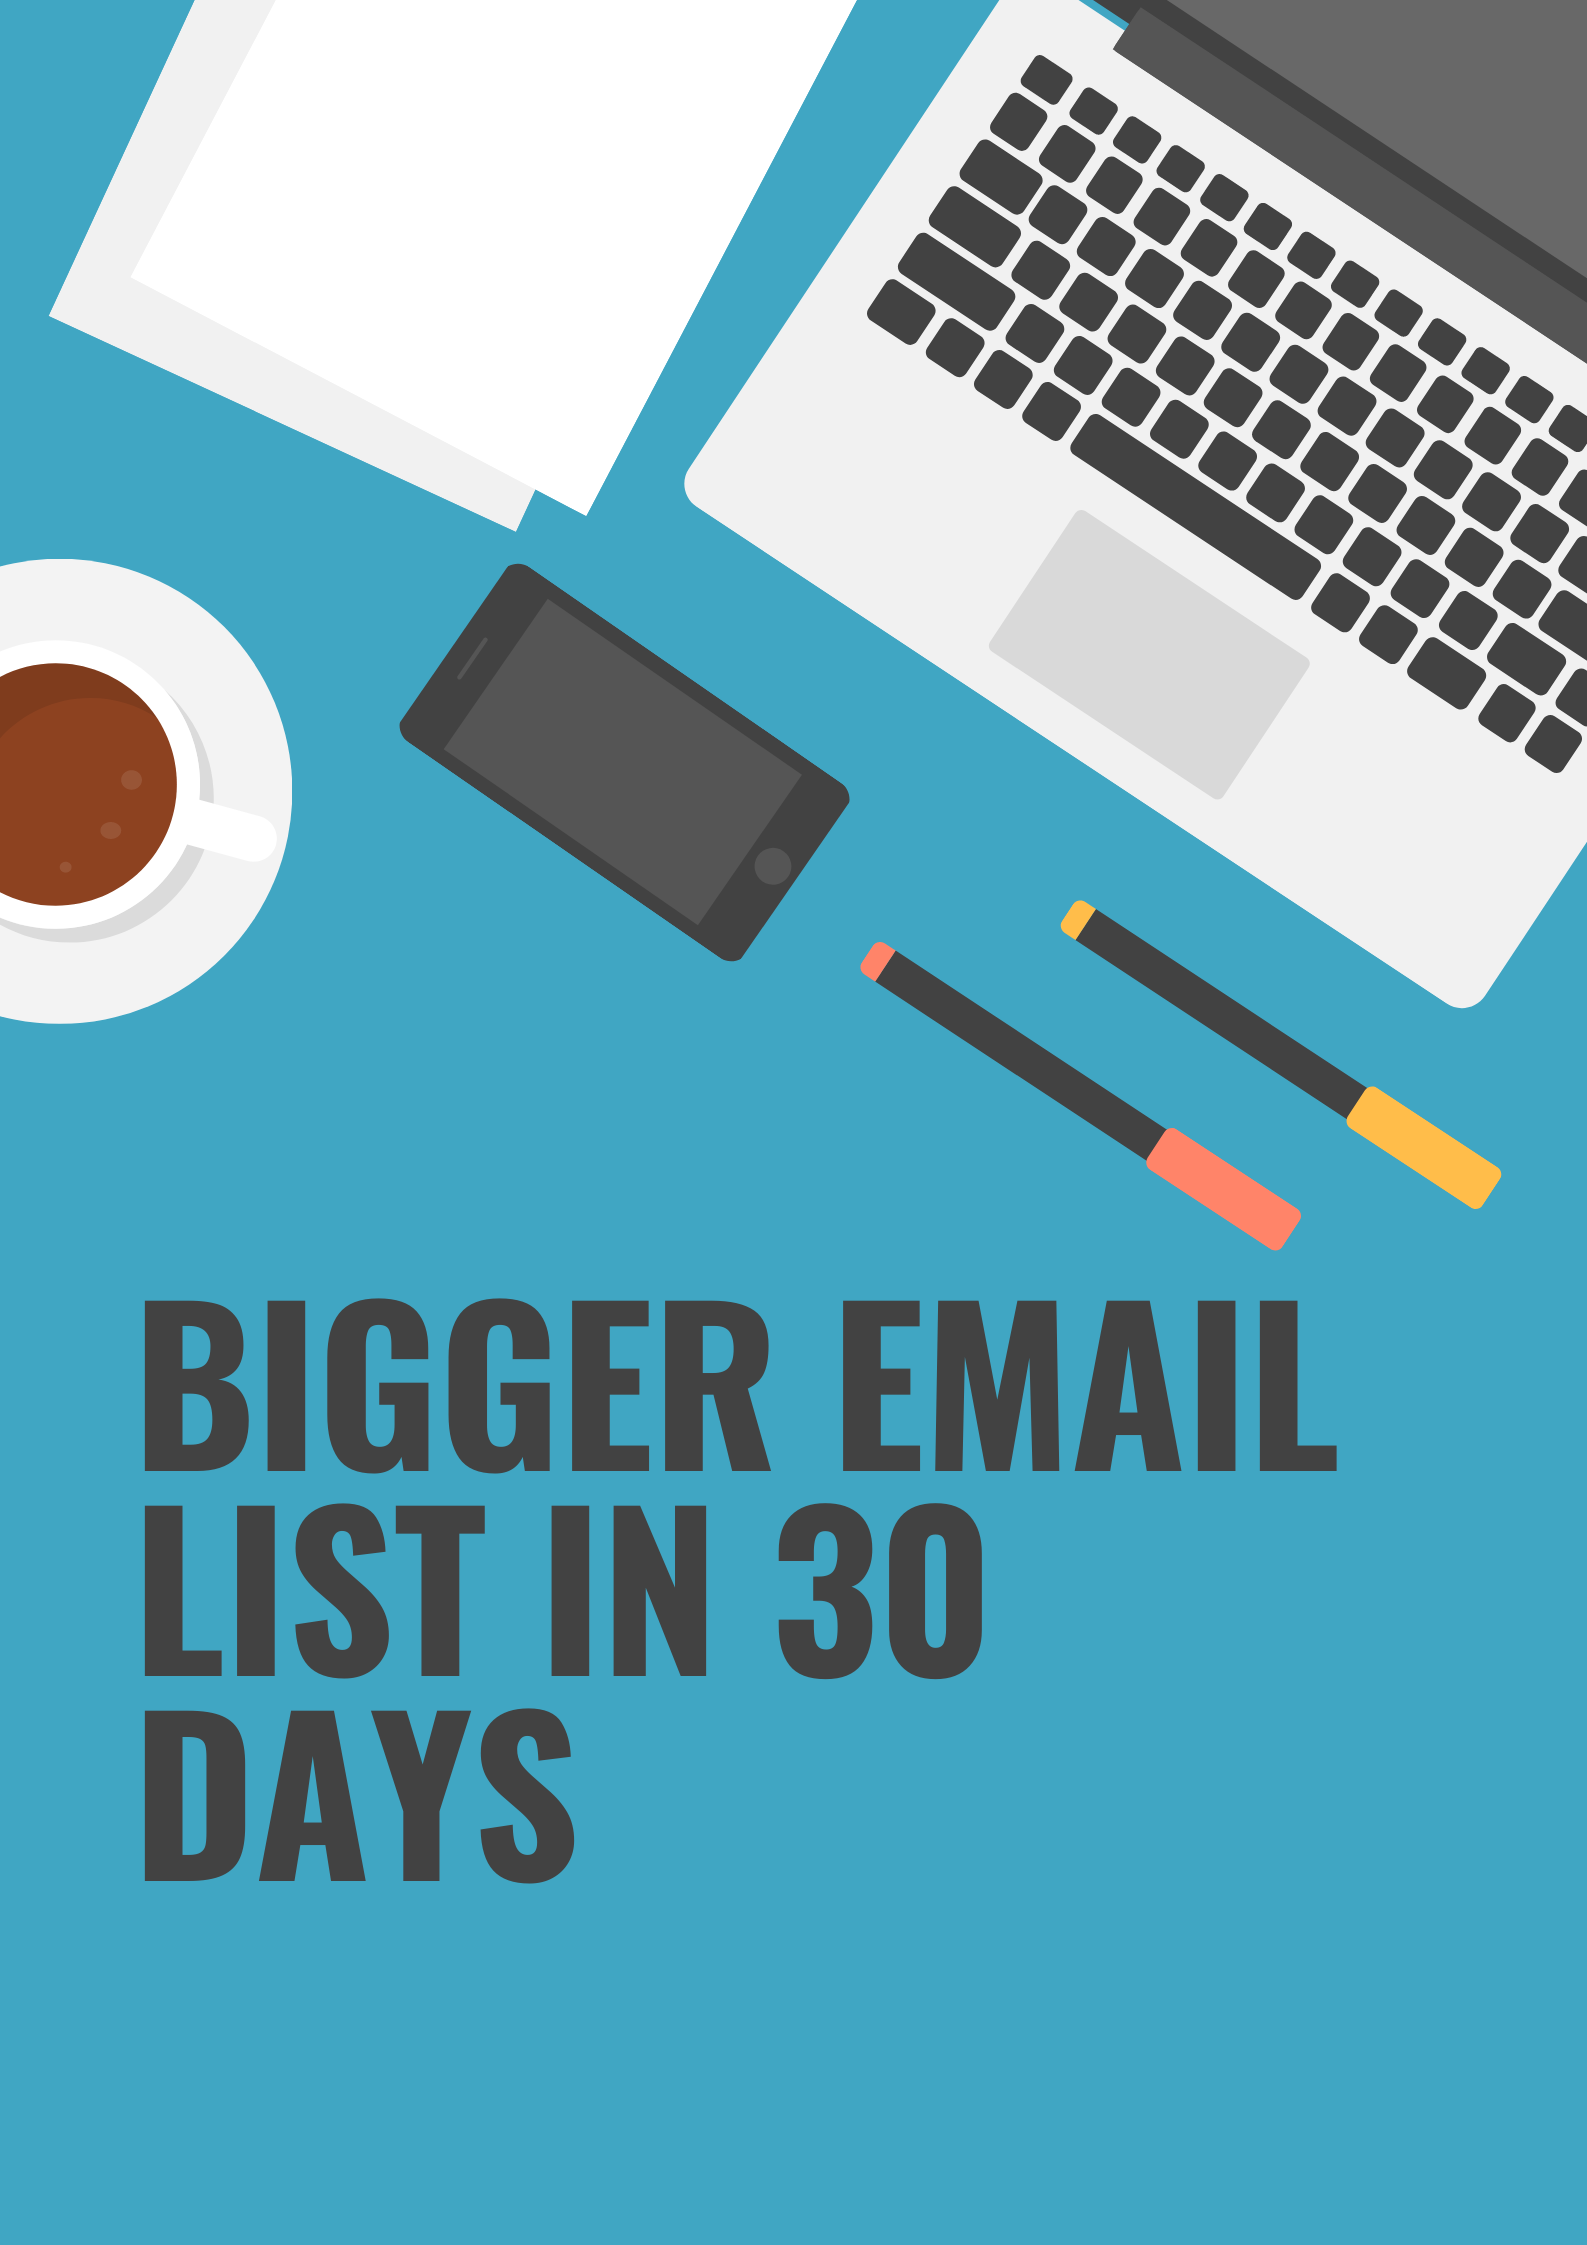 bigger email list in 30 days